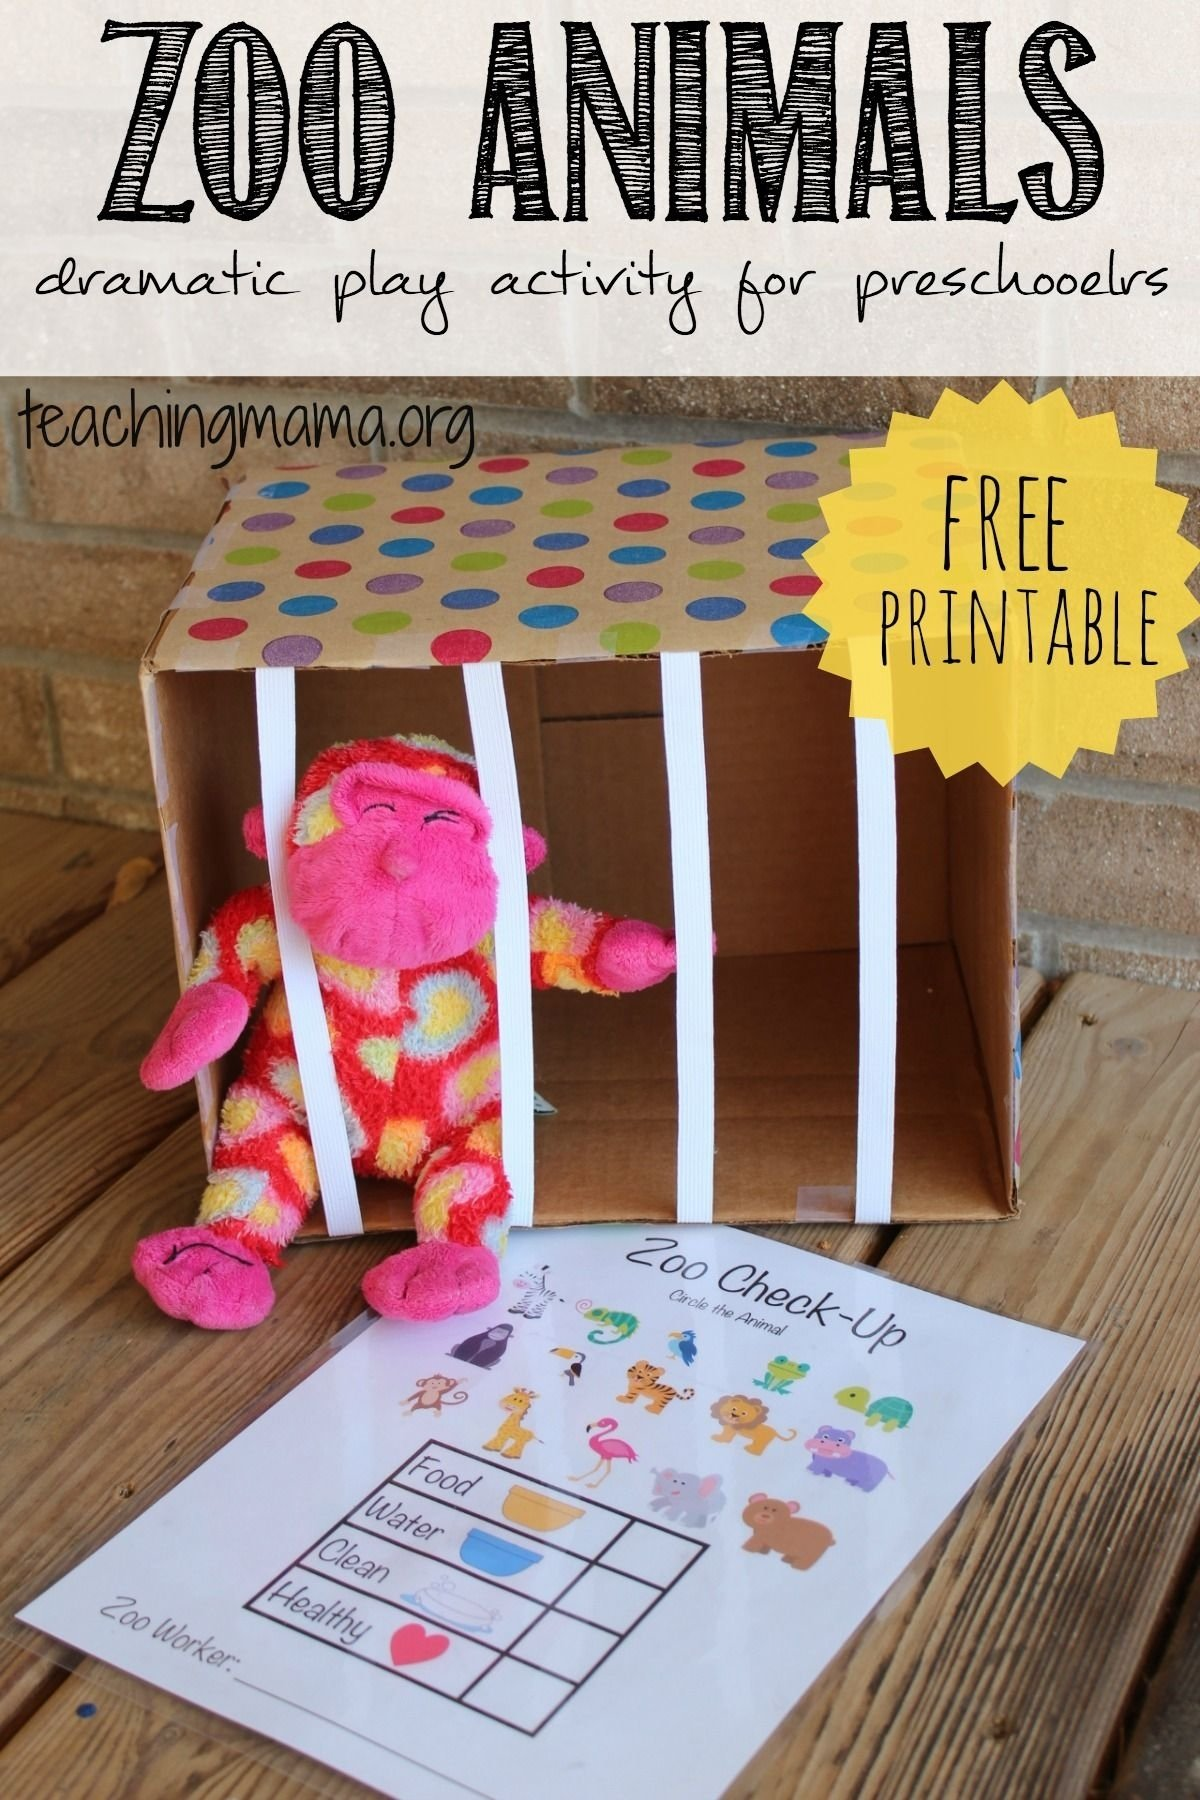 10 Lovely Dramatic Play Ideas For Preschoolers zoo animals dramatic play activity dramatic play zoos and free